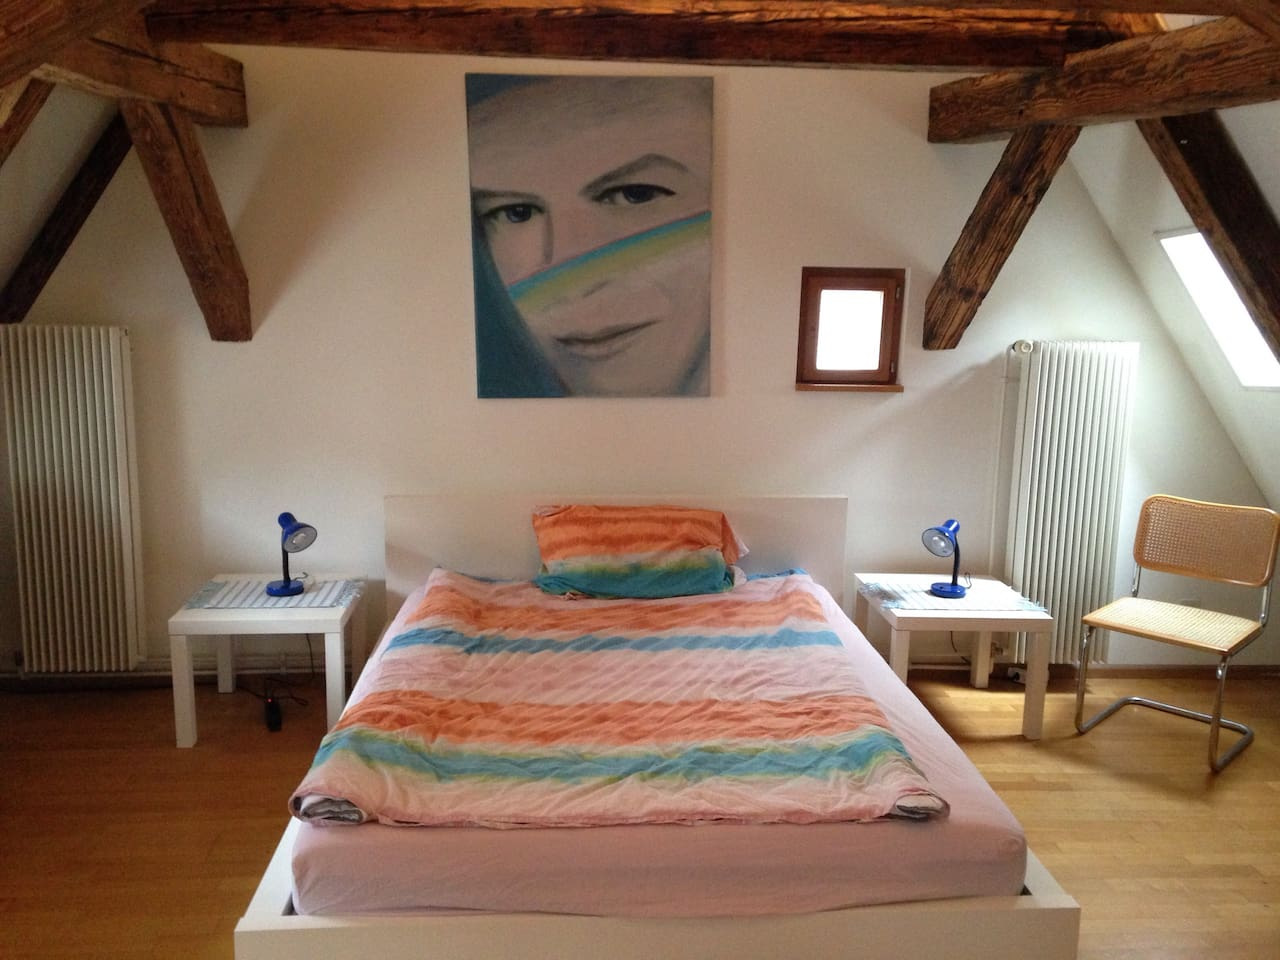 bedroom with painting, the whole apartment is full of original paintings by an artist friend, they are for sale as well